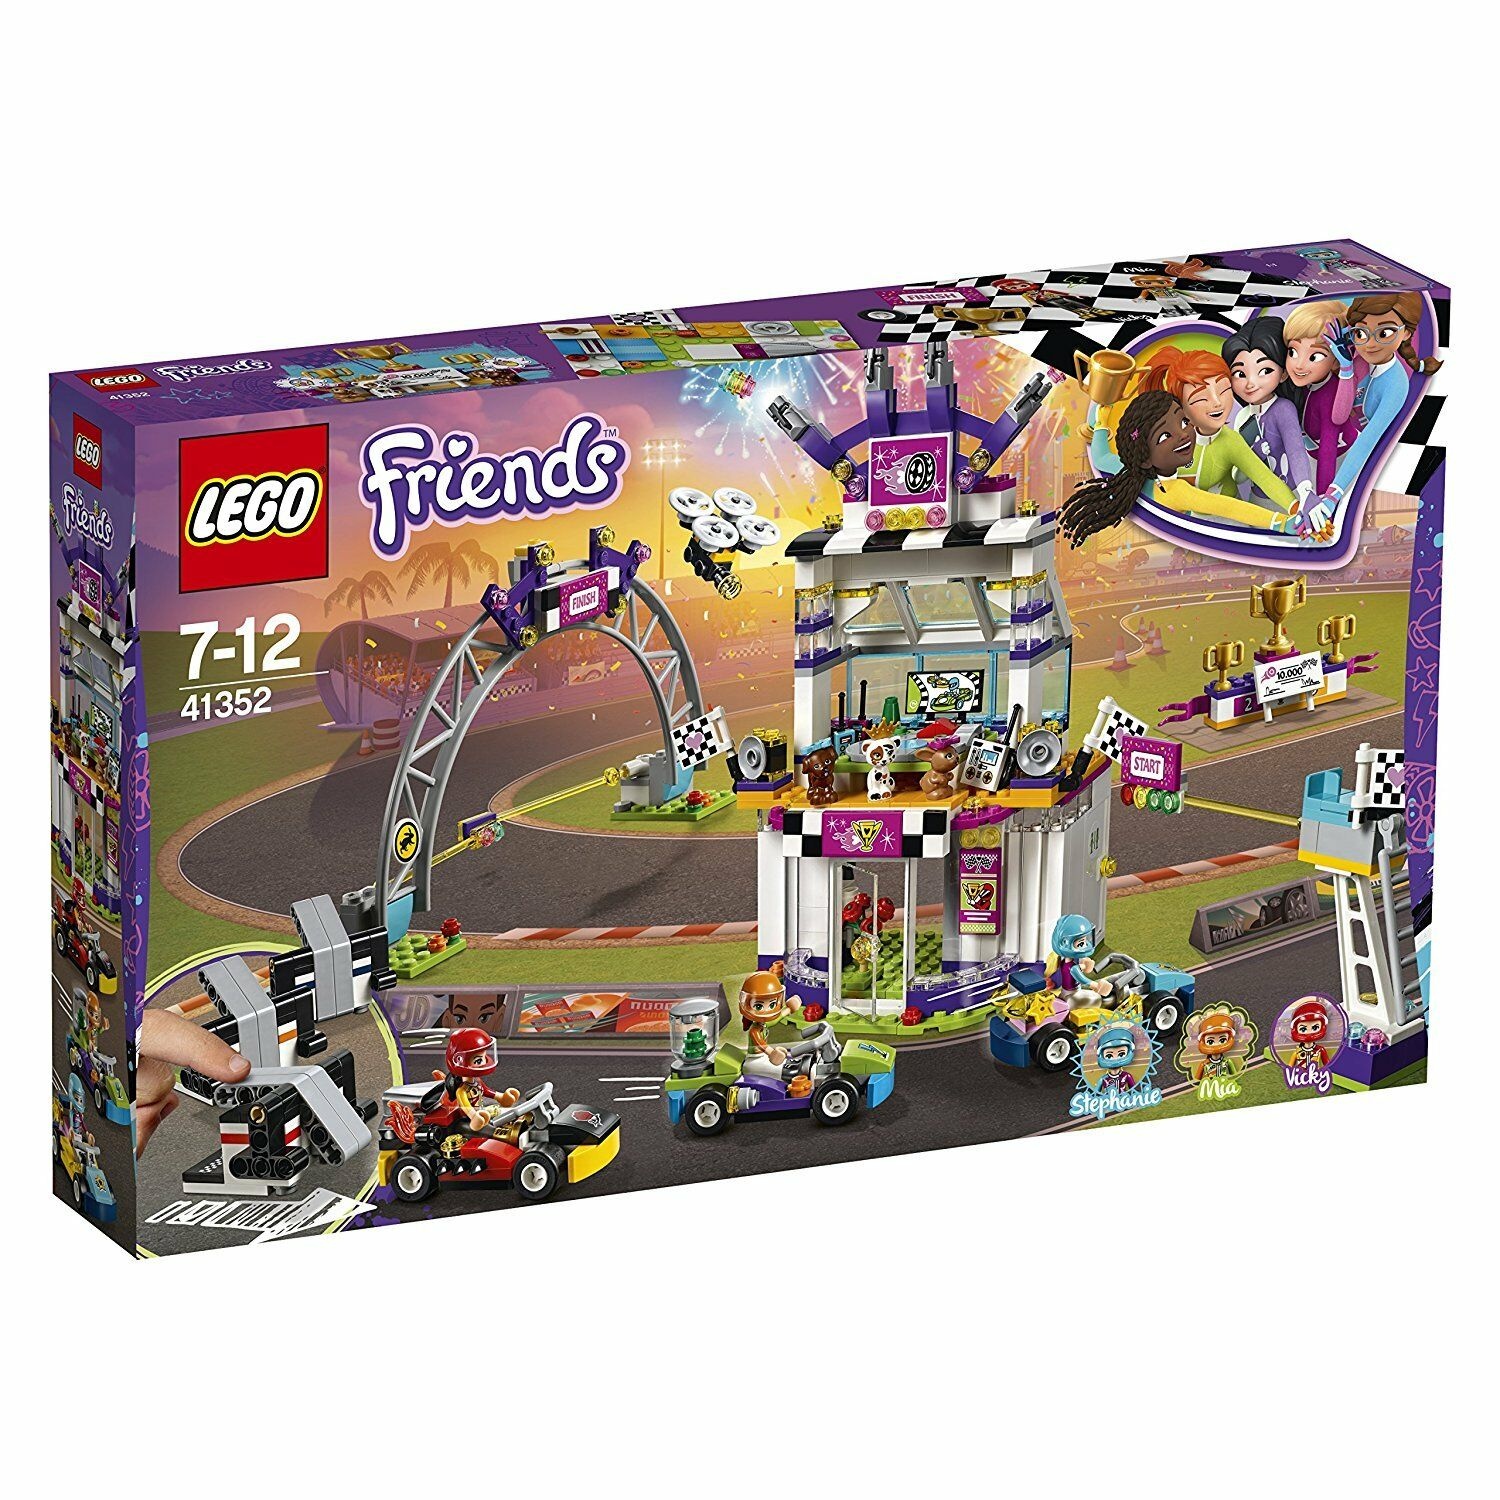 Lego Friends 41352 Giorno di L' gran carrera - New and sealed